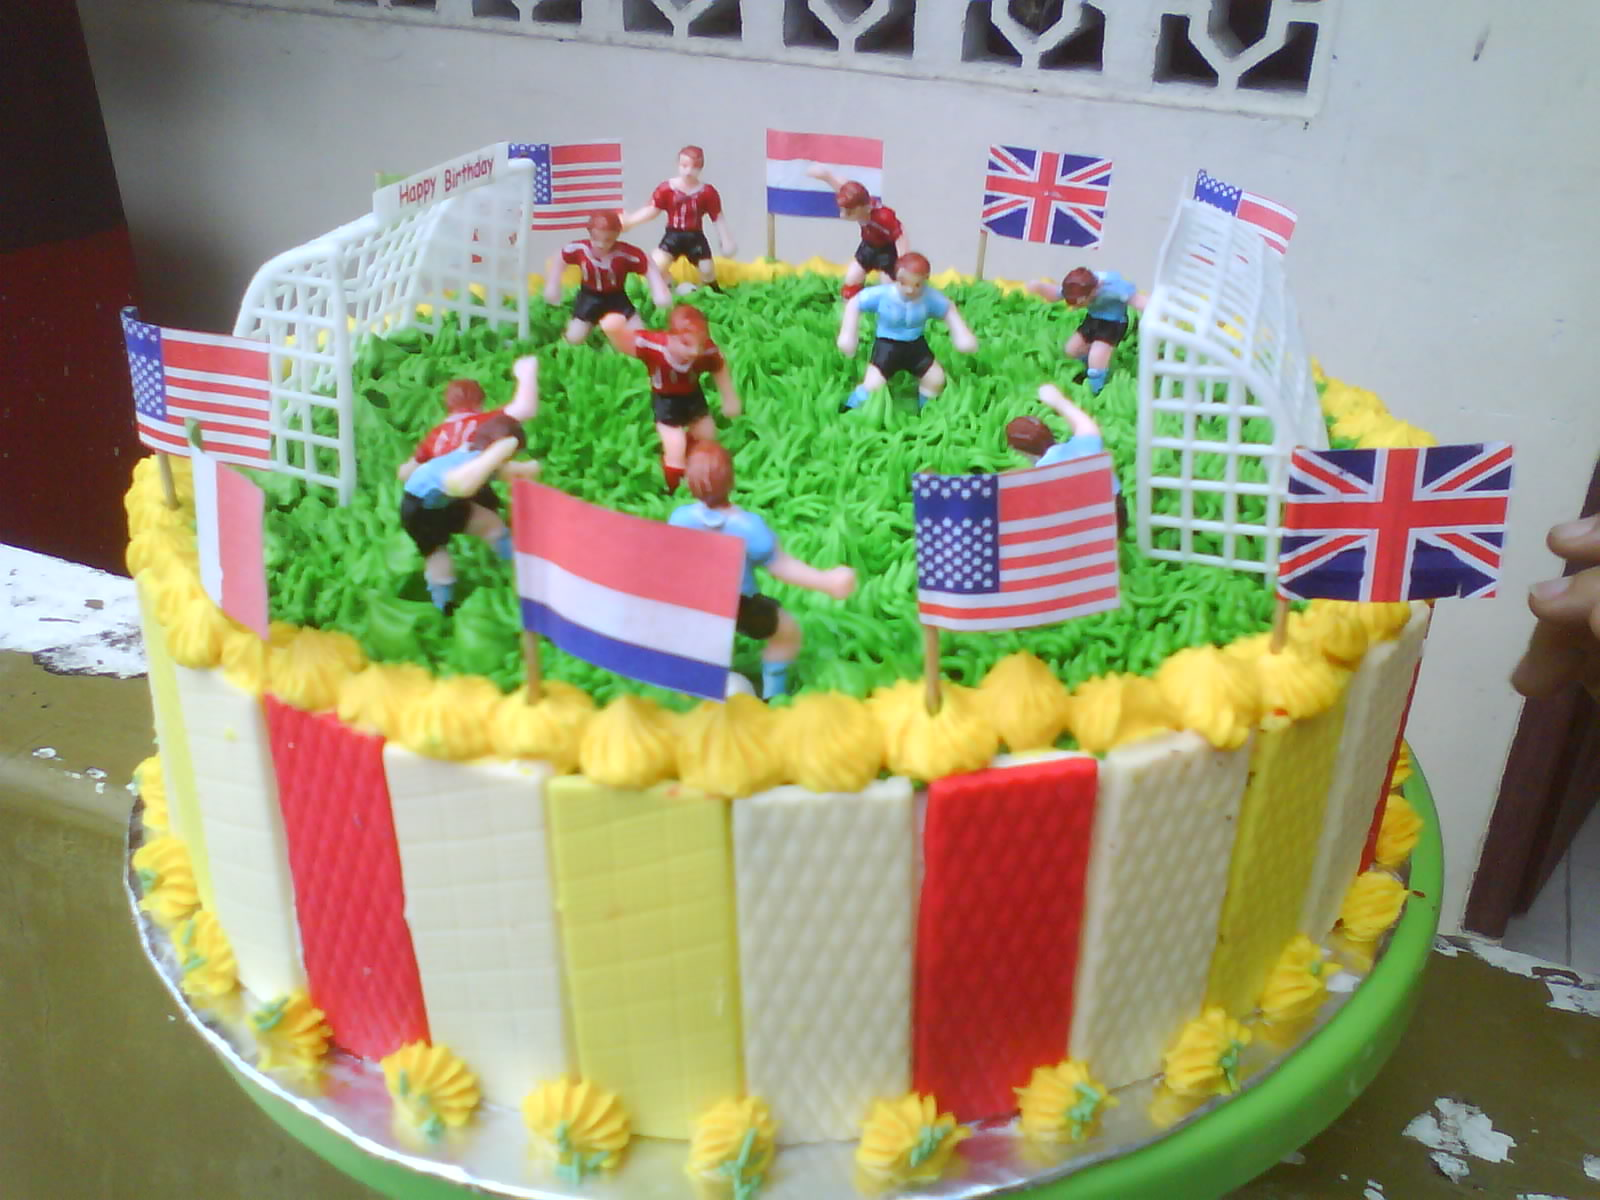 Pin Kue Tart Ultah cake picture for pinterest and other social ...